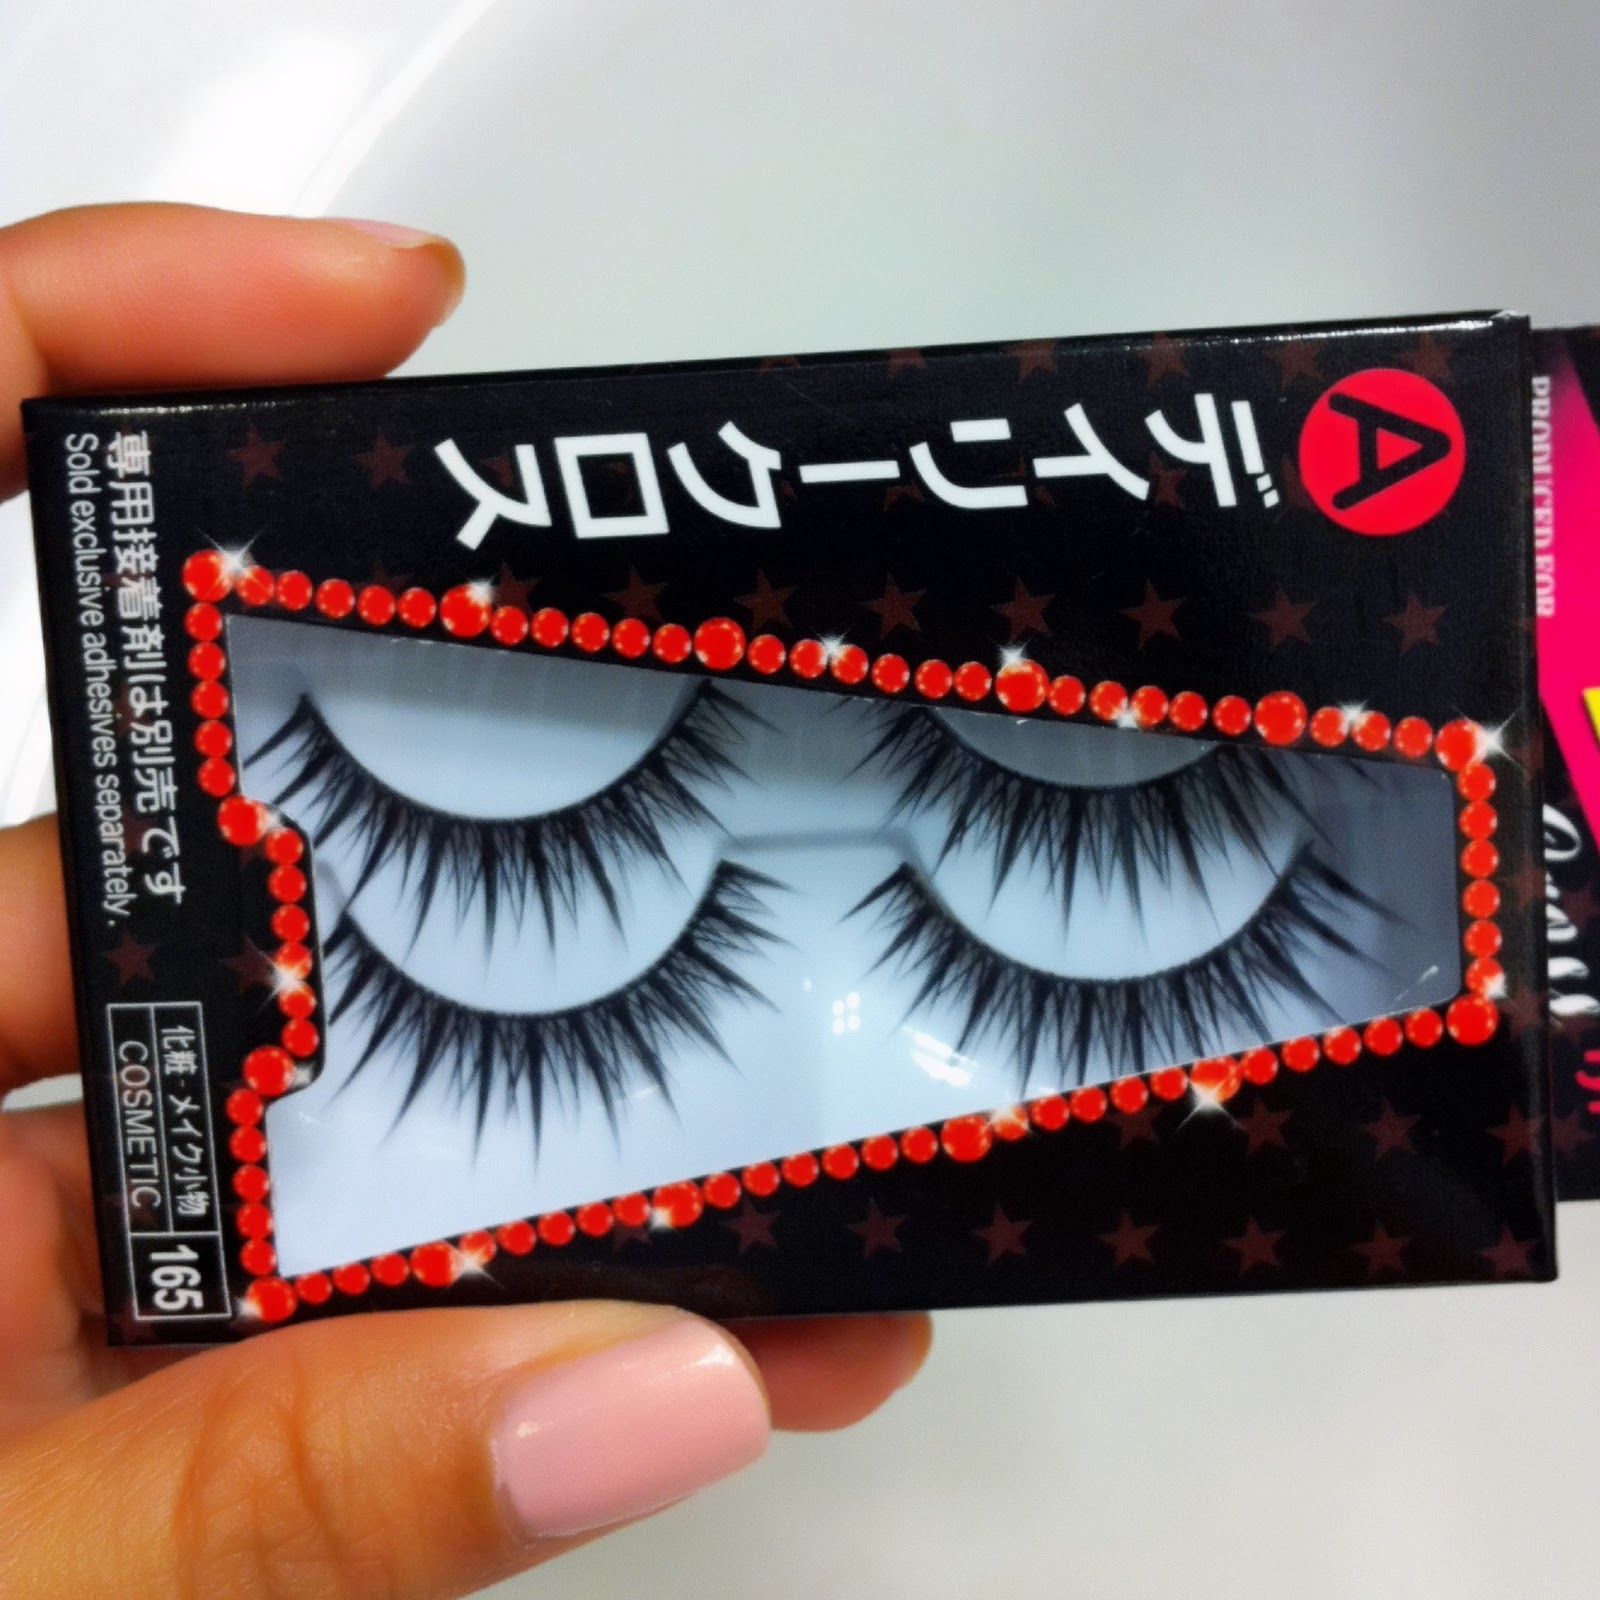 db000a09326 But I also know that they're not widely available, so here's your chance to  win some of your own! I'm giving away one box of Daiso Daily Eyelash Style